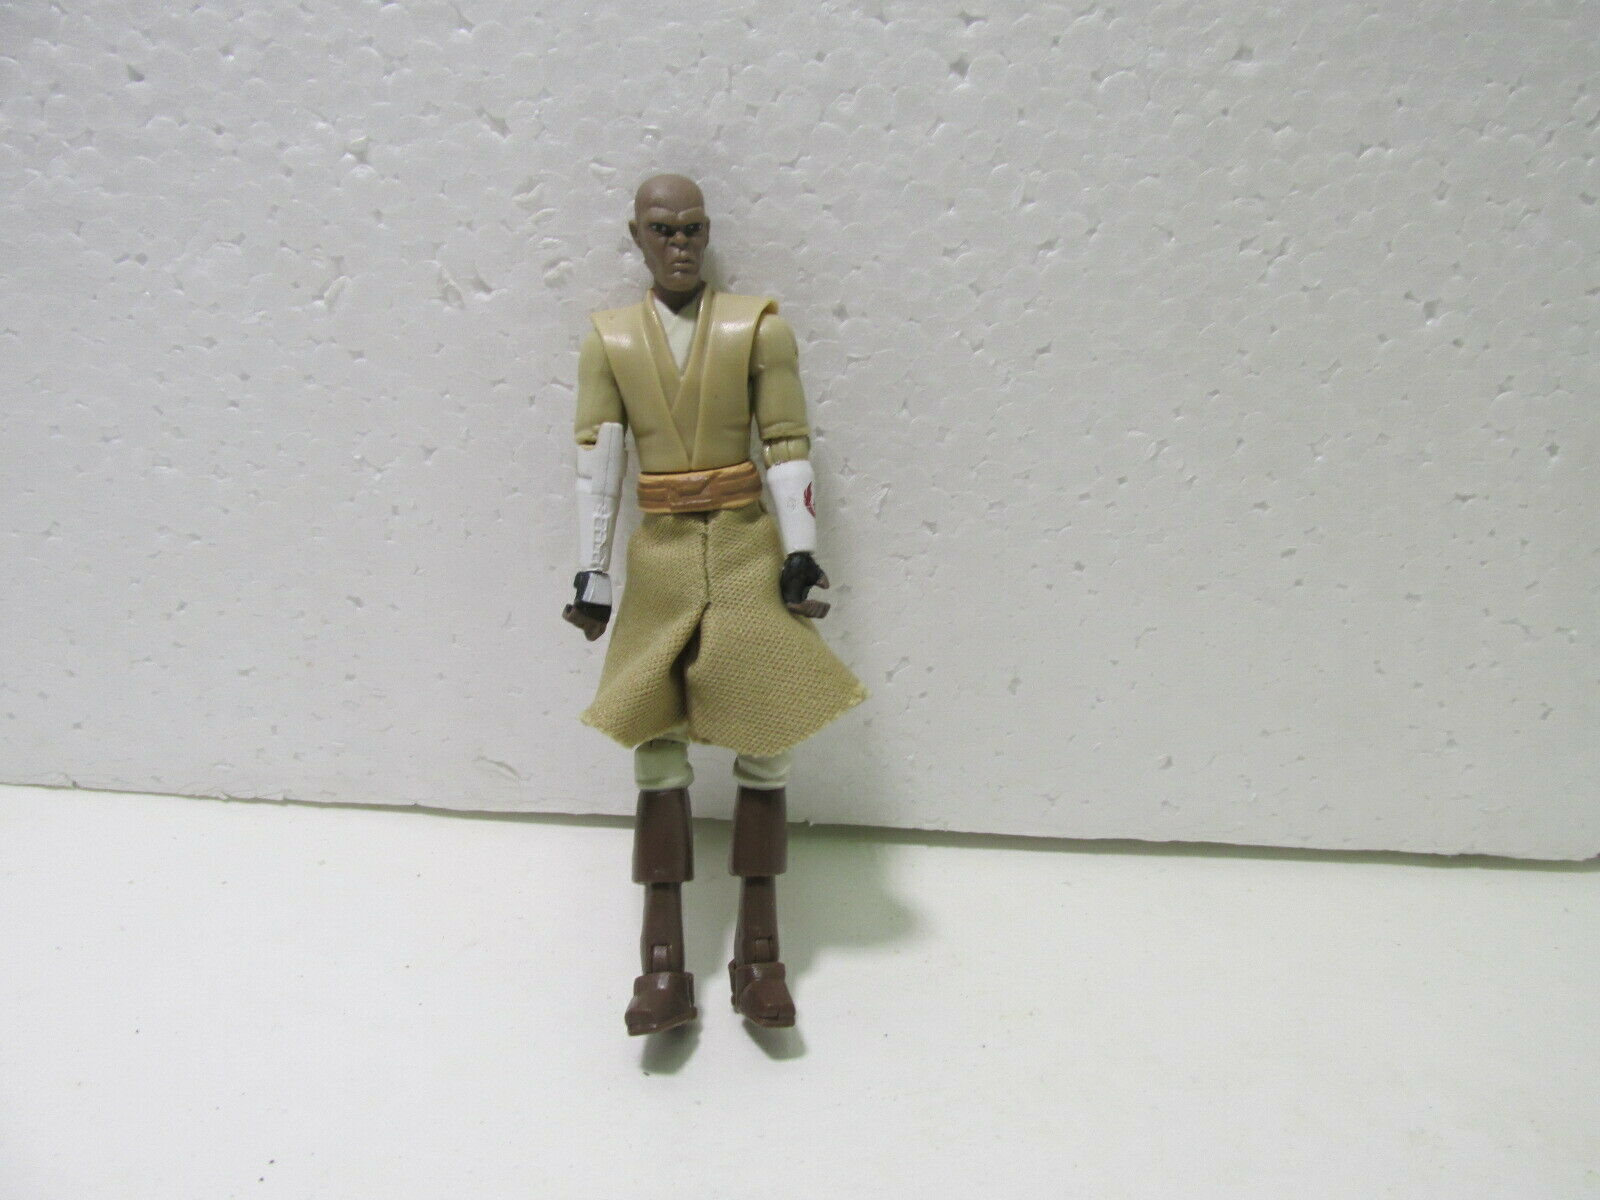 StarWars collection : Hasbro 2010 Star Wars Massue Windu 9.5cm Action Figurine t3847